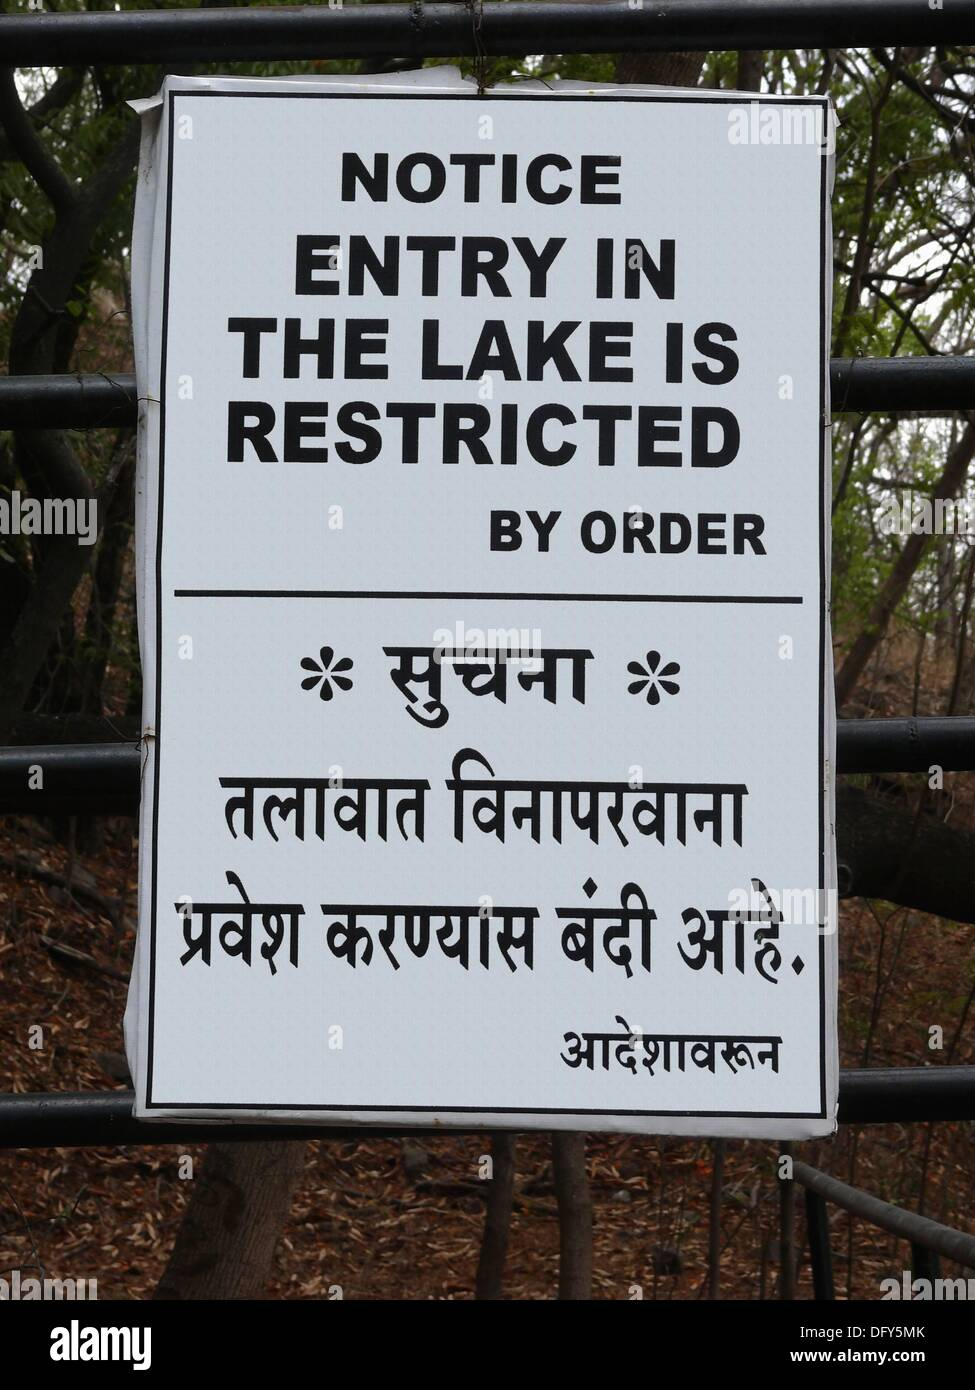 Notice board, Entry in the lake is restricted displayed in a garden, Writing in English & Regional language Marathi - Stock Image